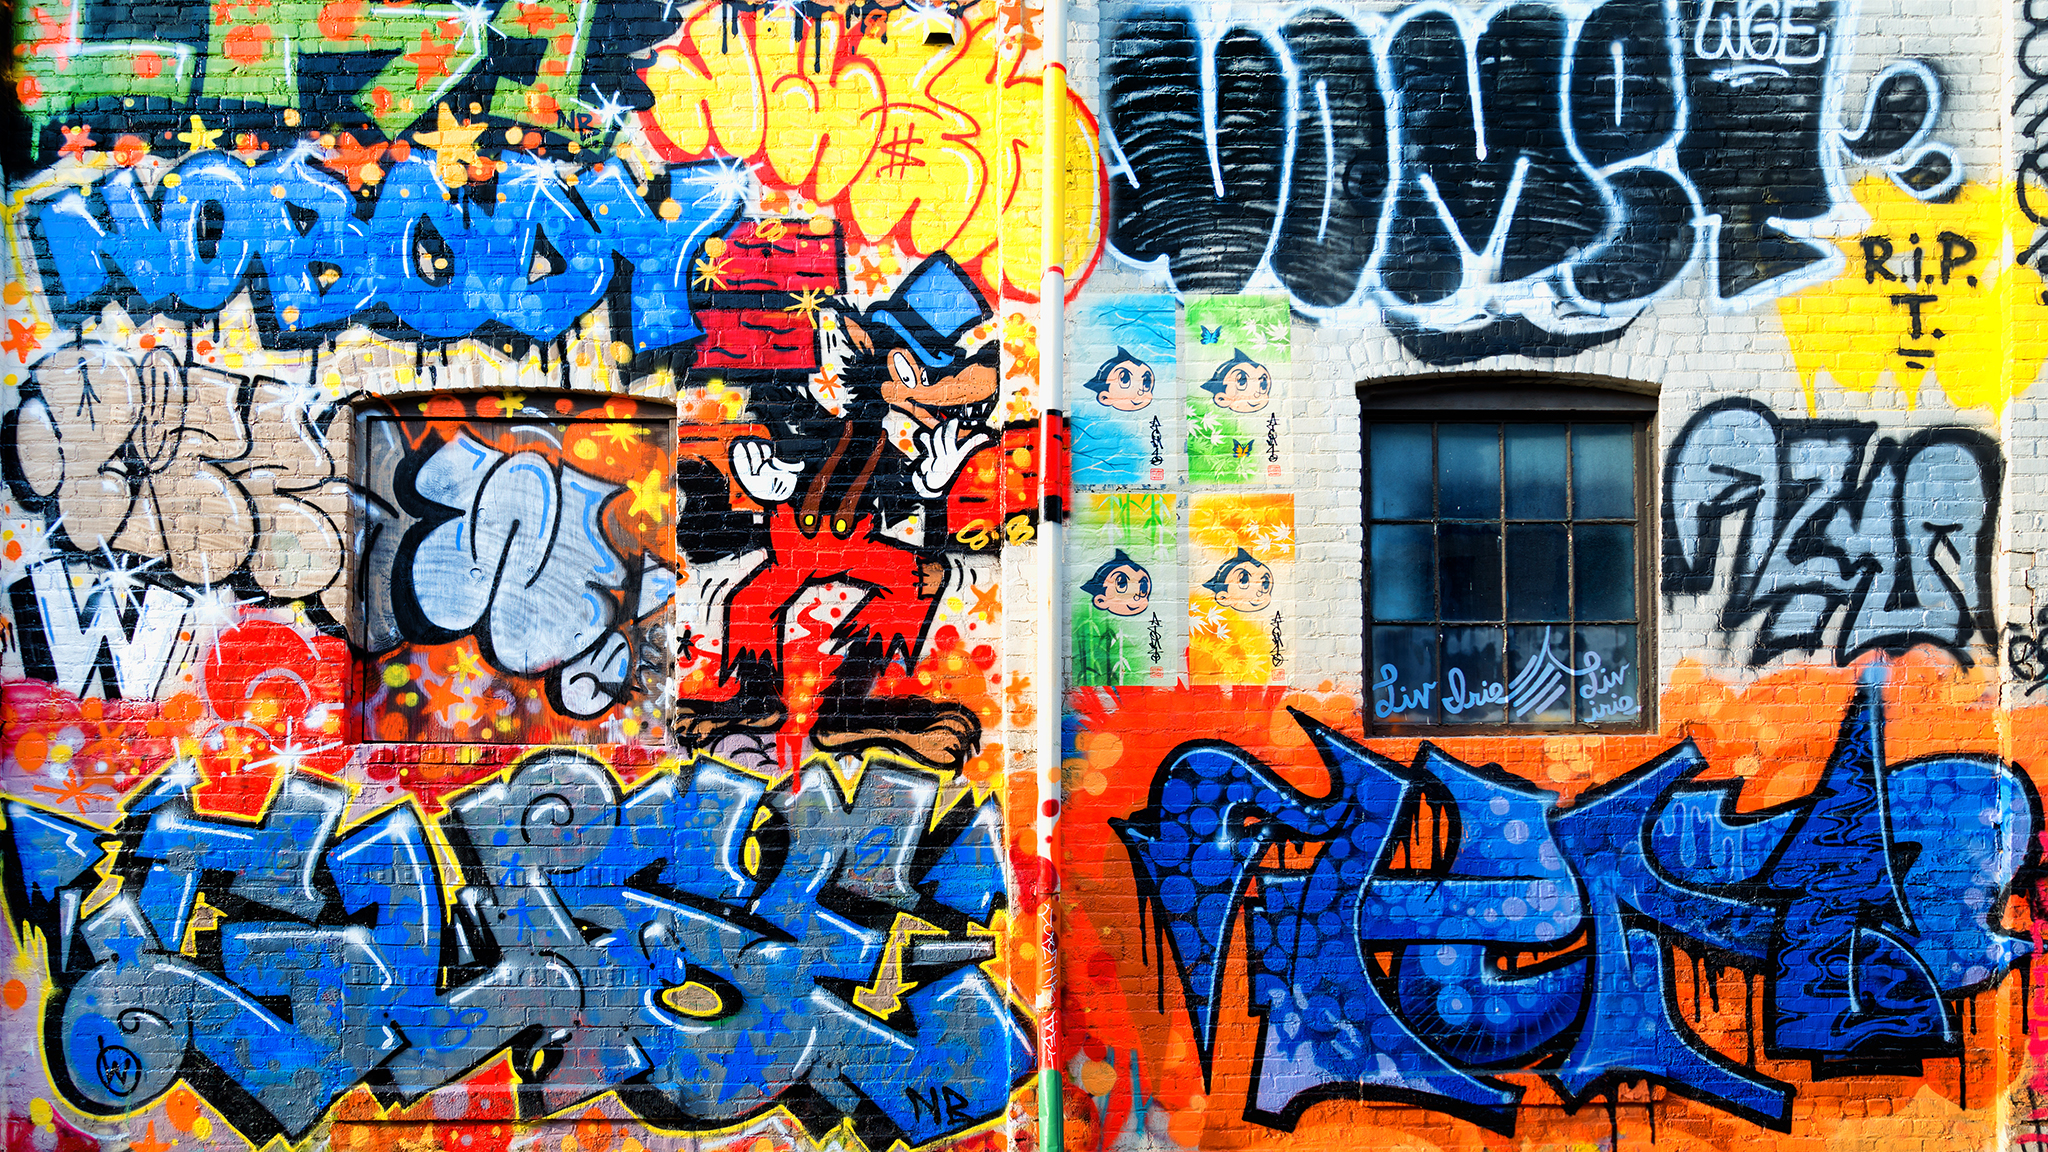 Graffiti Wallpaper 2048 x 1152 169 Flickr   Photo Sharing 2048x1152